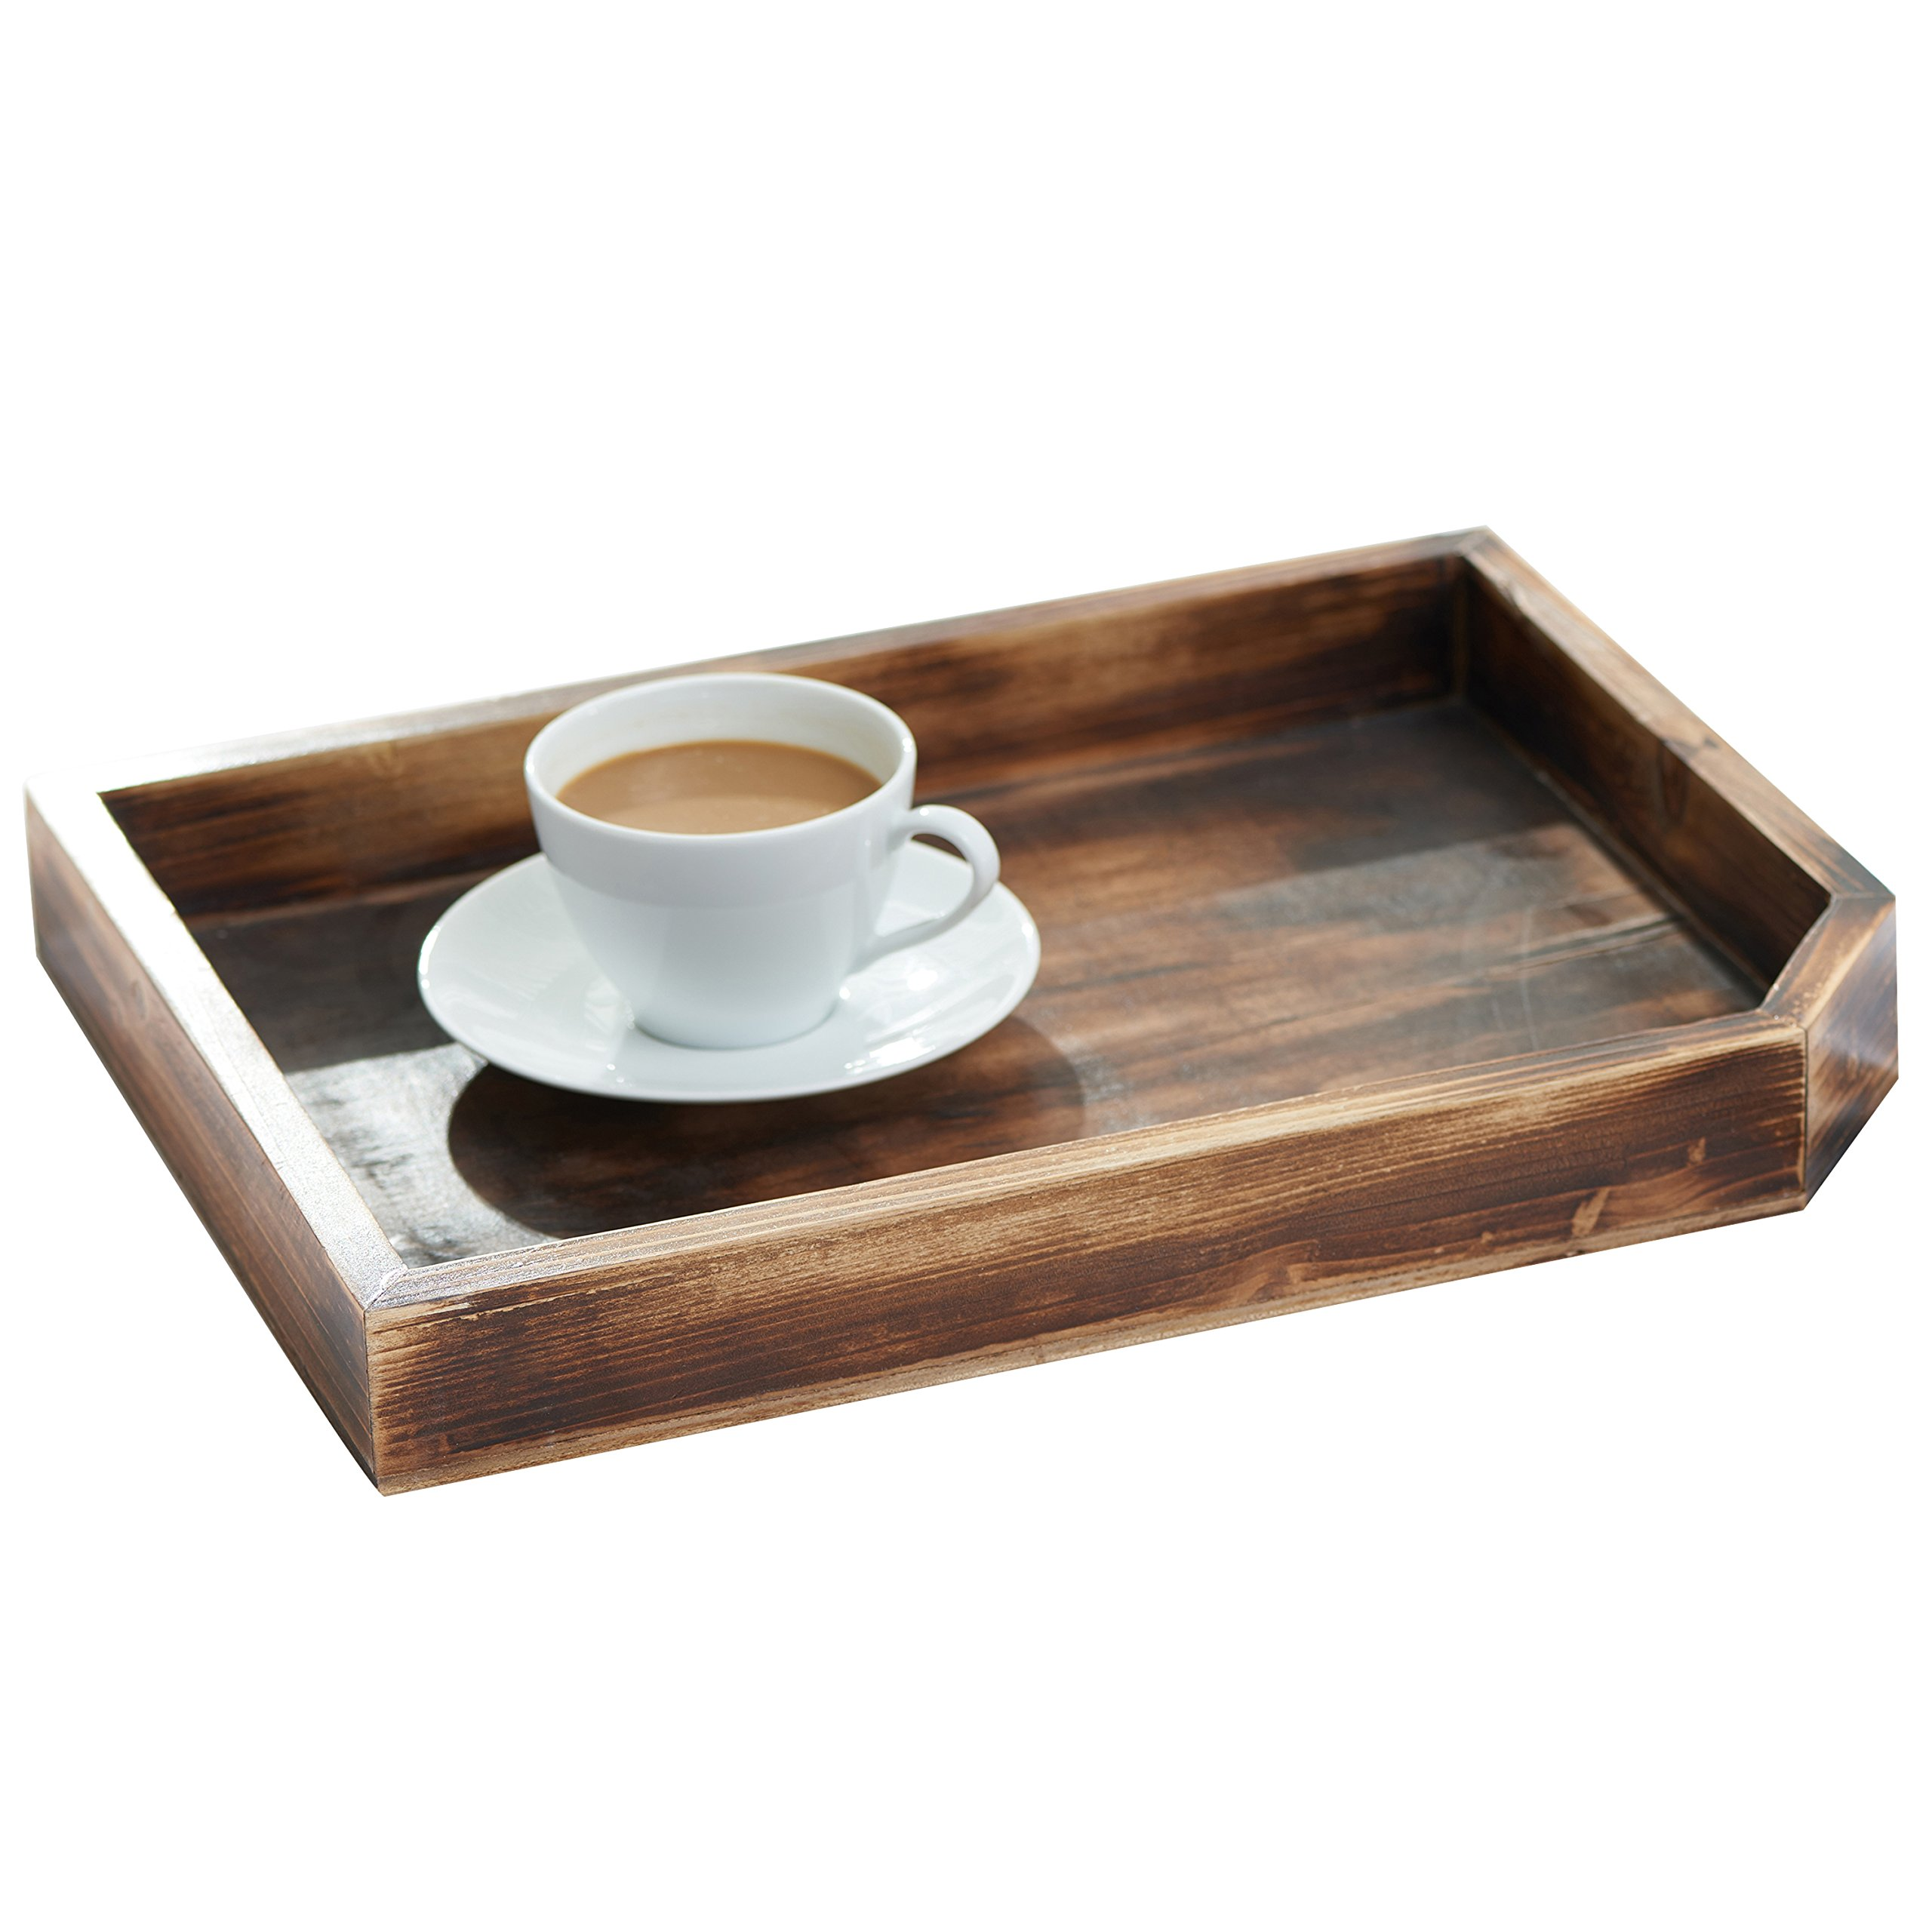 Vintage Wooden Coffee Table Display Tray/Wood Magazine and Document Holder, Dark Brown by MyGift